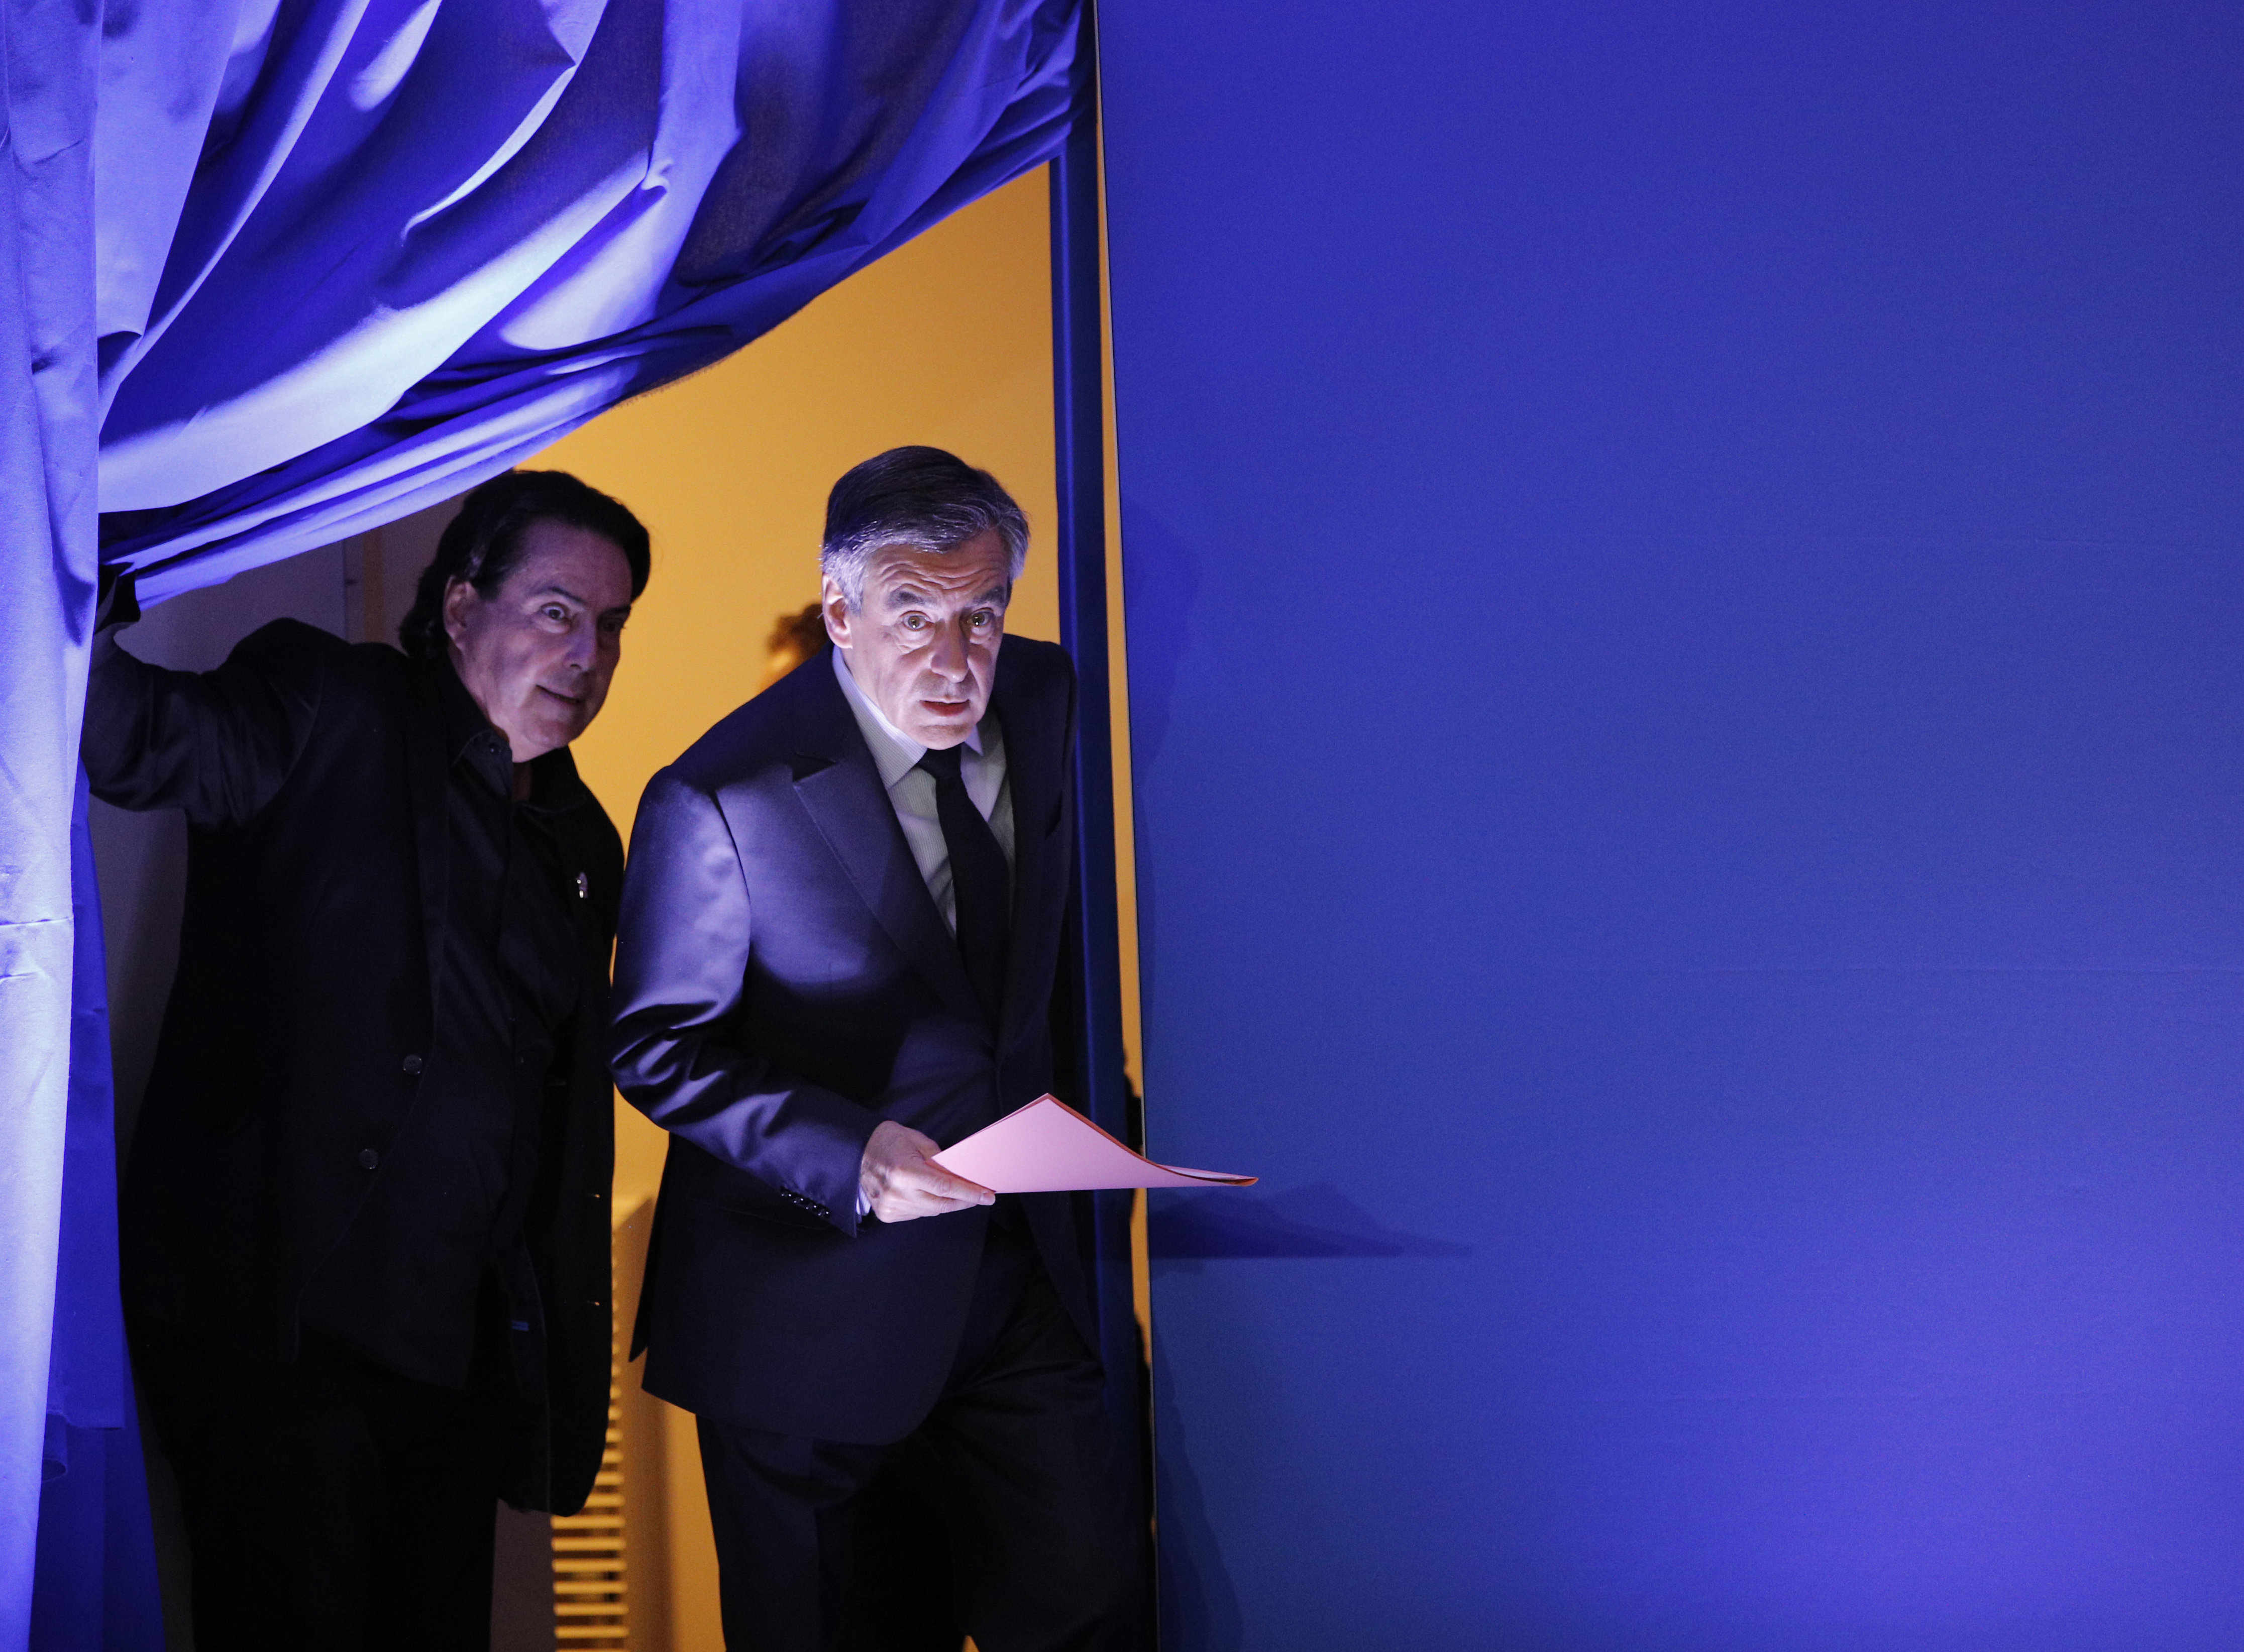 French conservative Francois Fillon (R) arrives on stage to hold a press conference at his campaign headquarters in Paris, France on Feb. 6, 2017. (AP Photo/Christophe Ena)